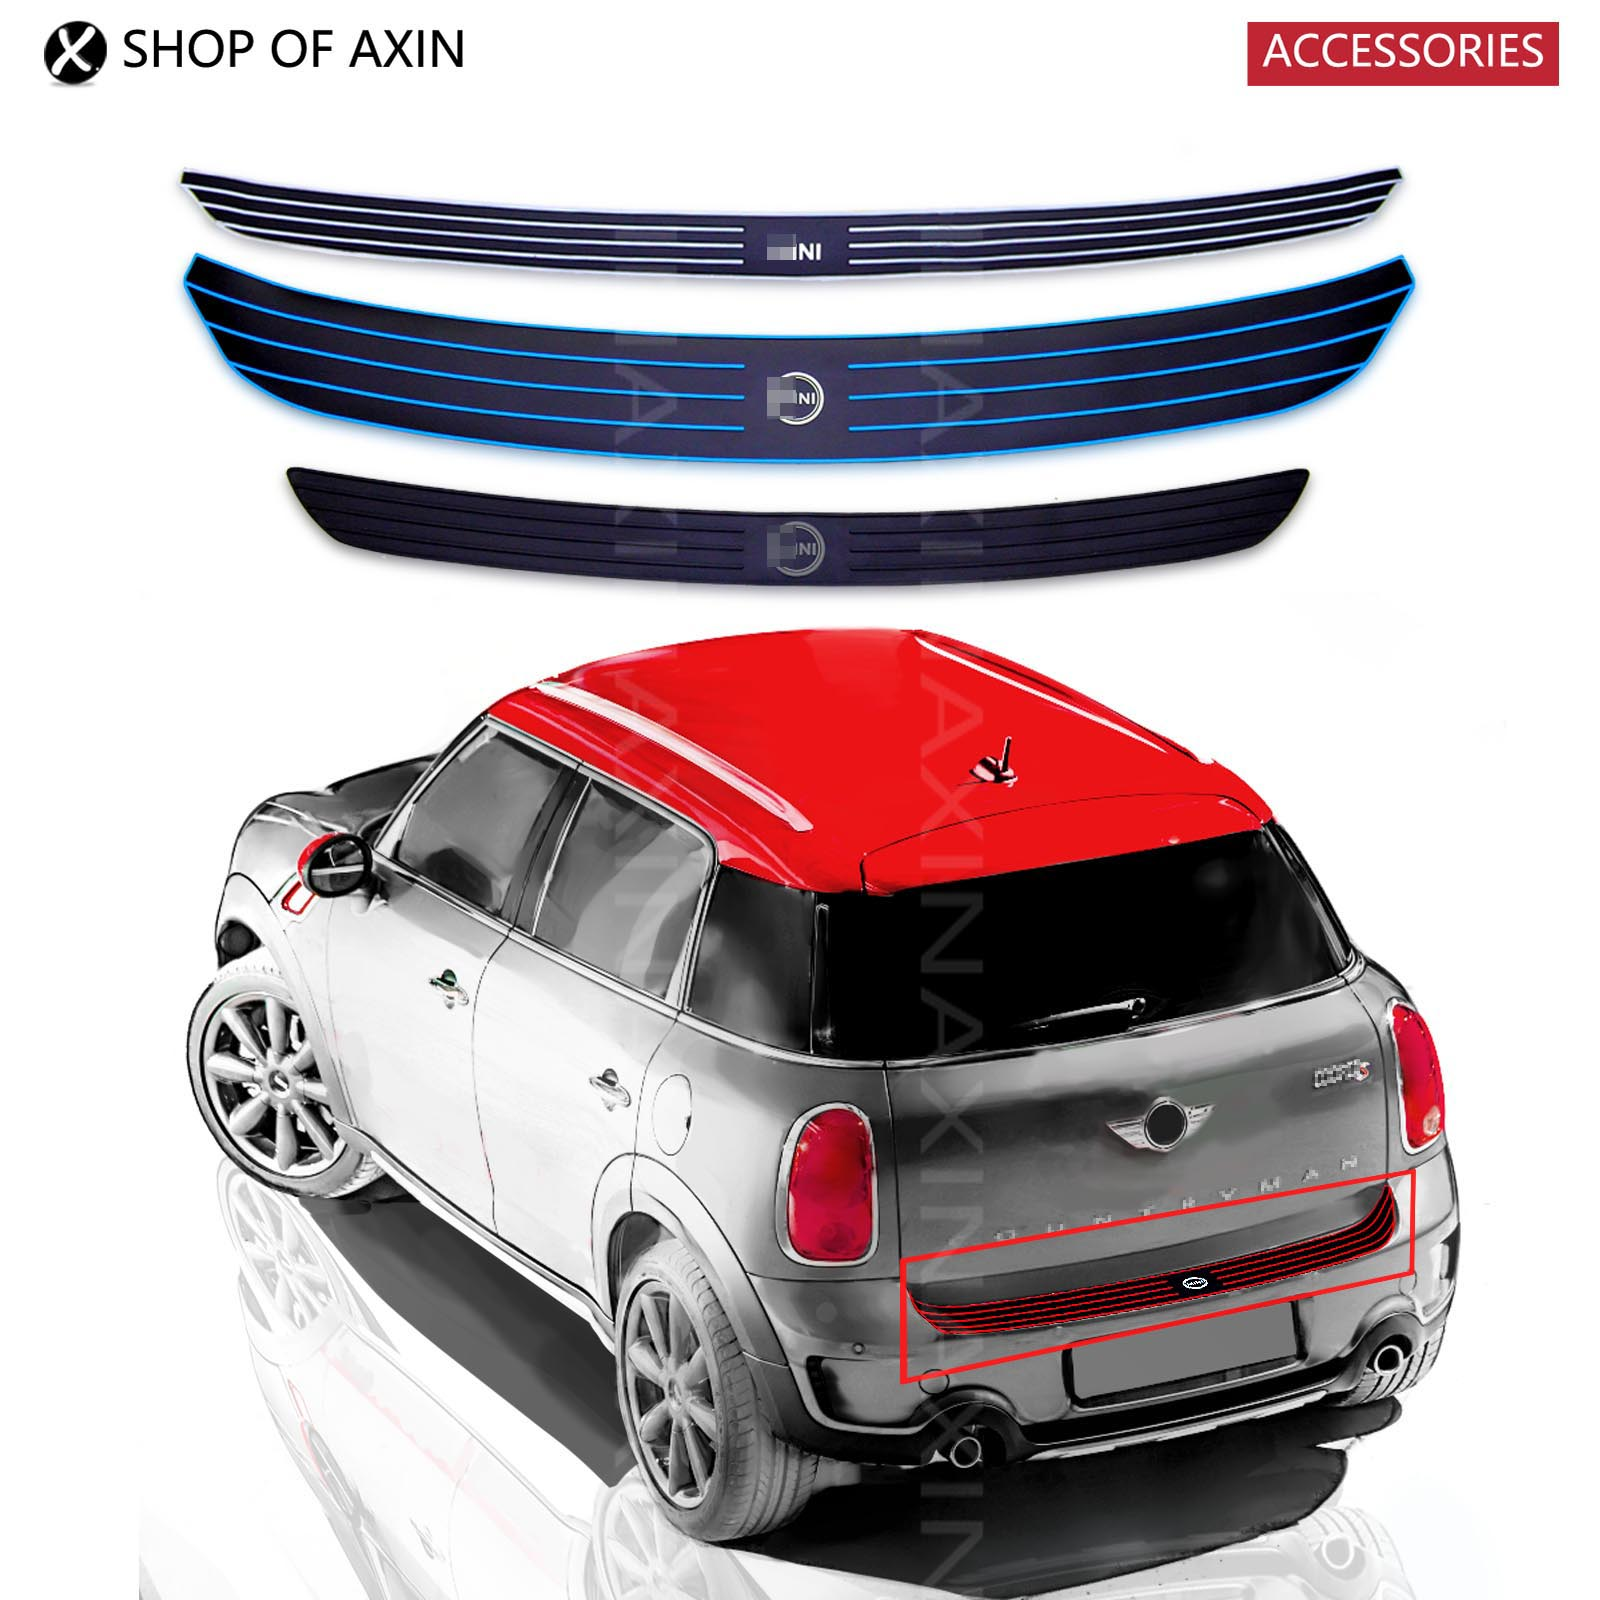 Car rear bumper Trunk load edge Protector guard Rubber Trim sticker for MINI cooper clubman countryman R55 R56 R57 R60 F55 F56